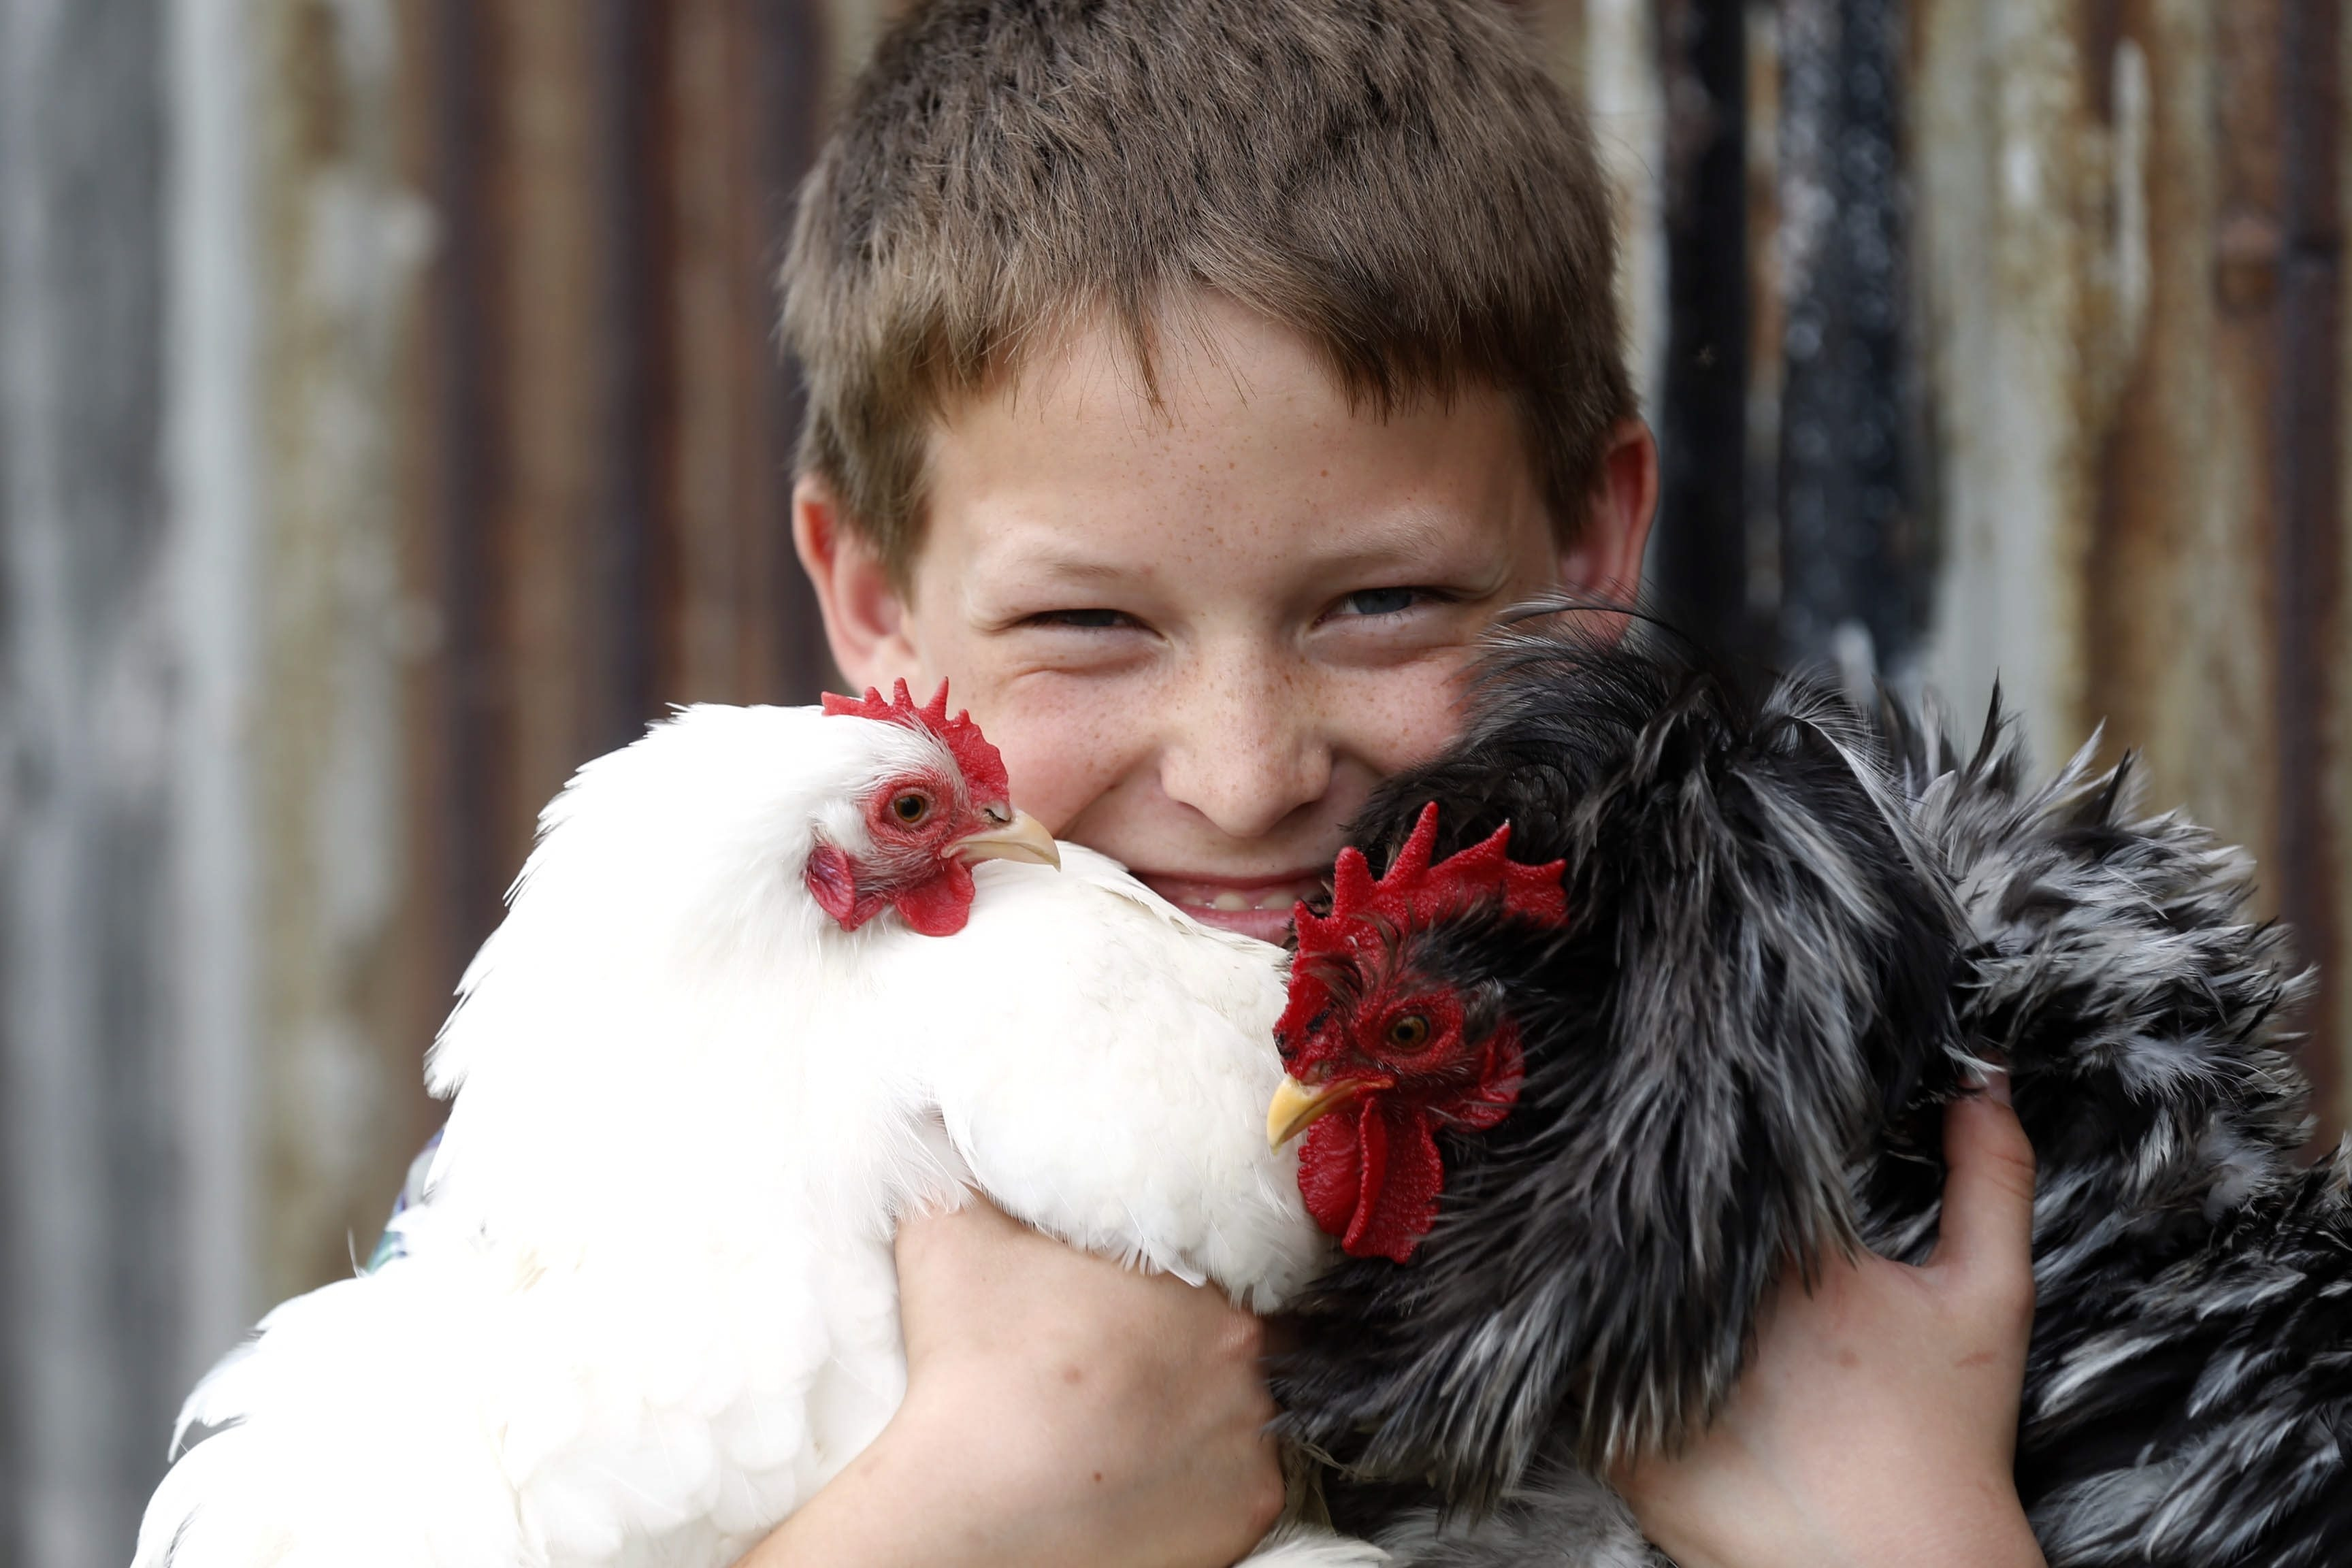 Wade Richardson, a 13-year-old poultry breeder from North Collins, NY on Friday, May 29, 2015.  (Robert Kirkham/Buffalo News)